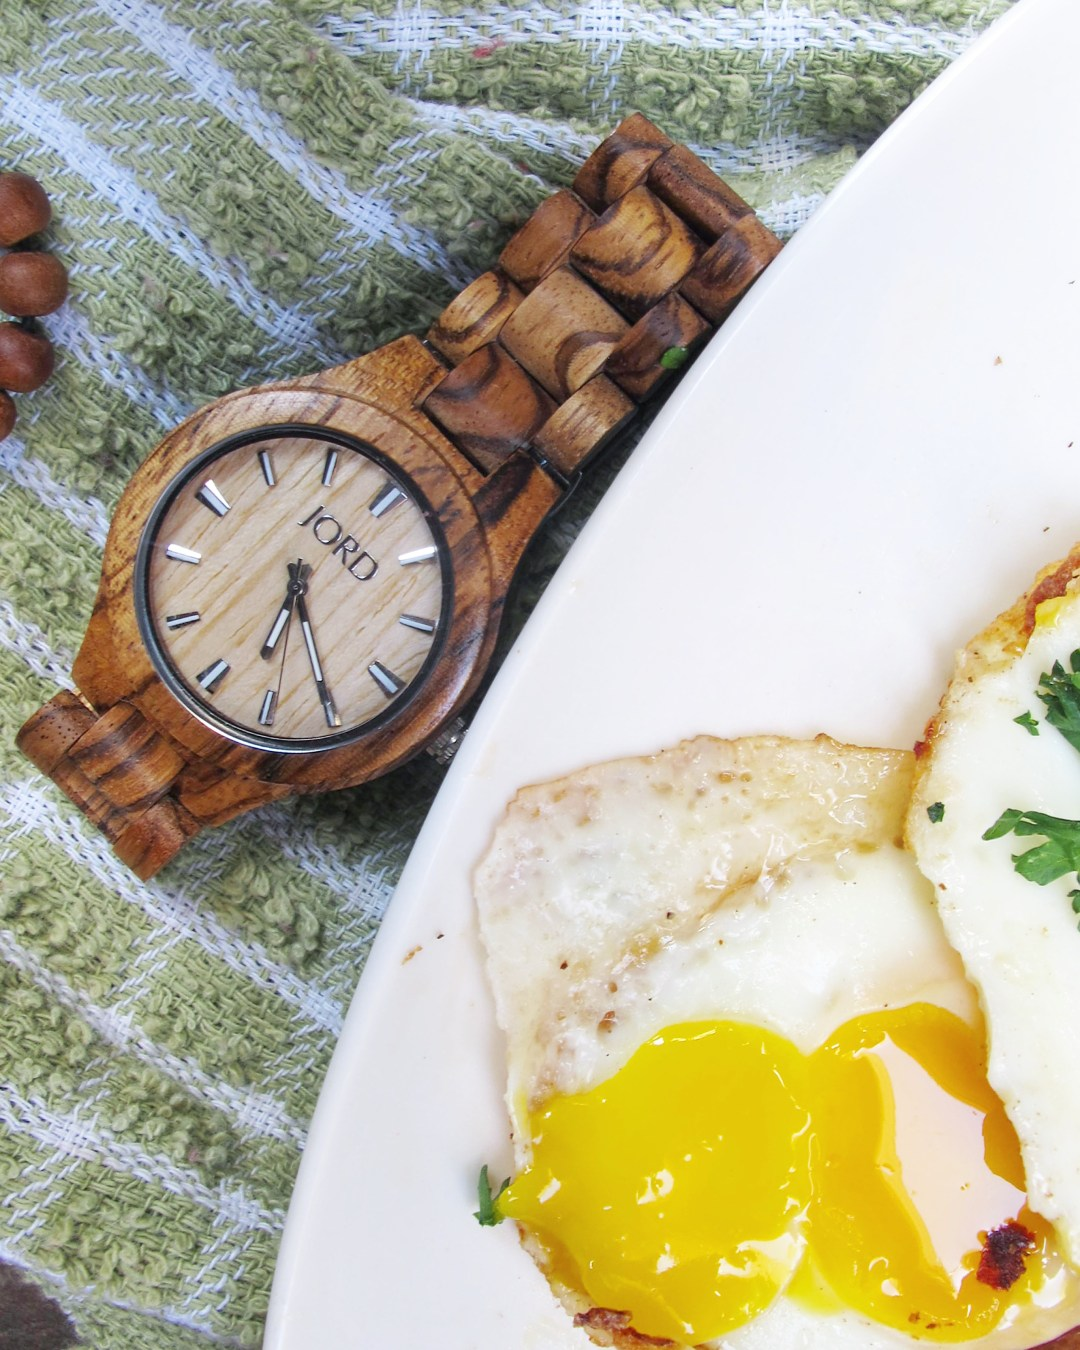 Celebrate your dad for Father's Day with yummy Steak and Eggs. The perfect Father's Day Gift.